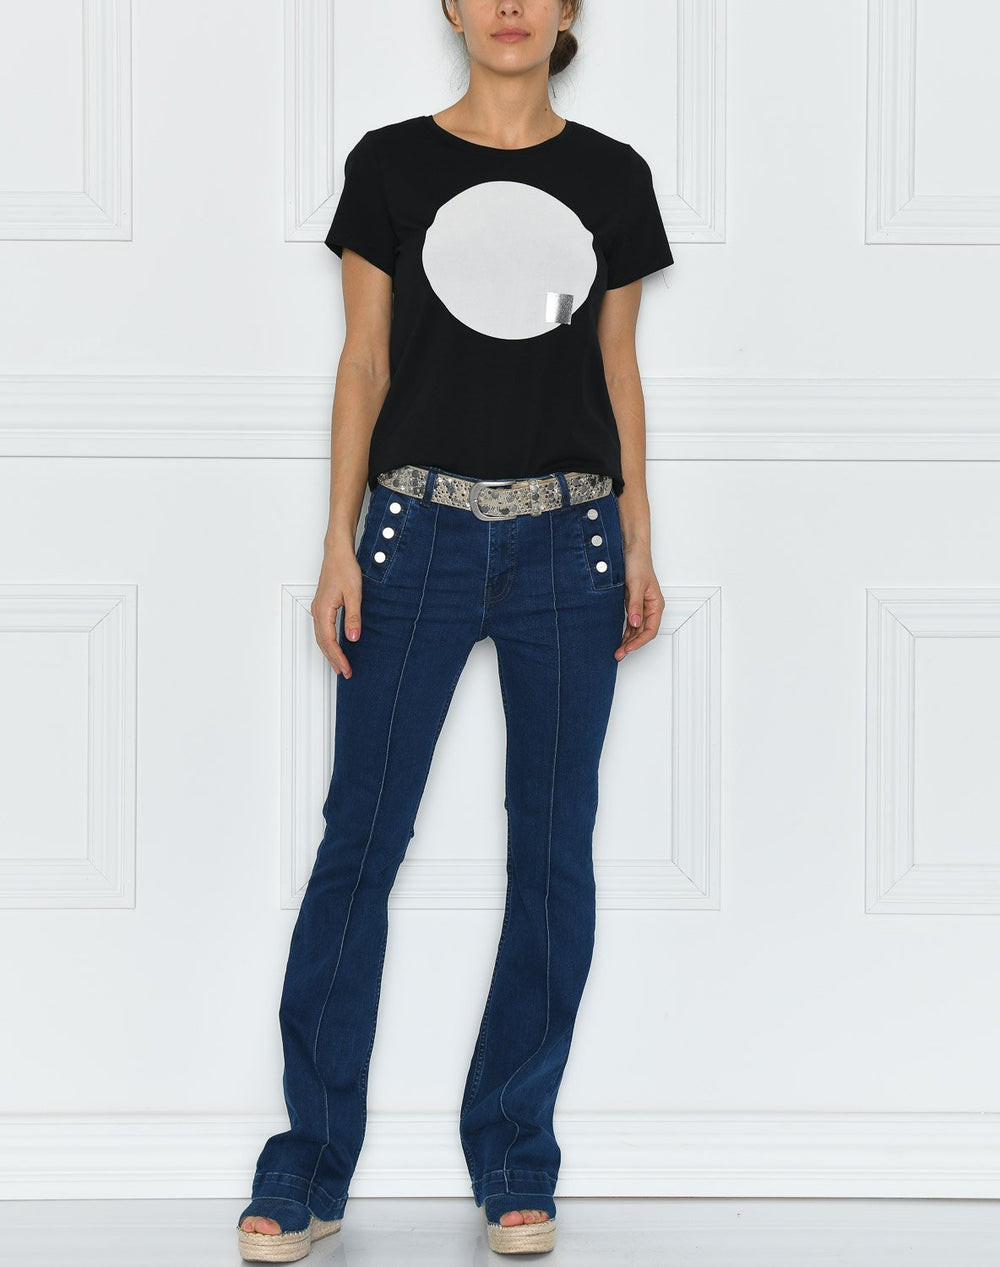 Dranella DRinever 3 tee black - Online-Mode